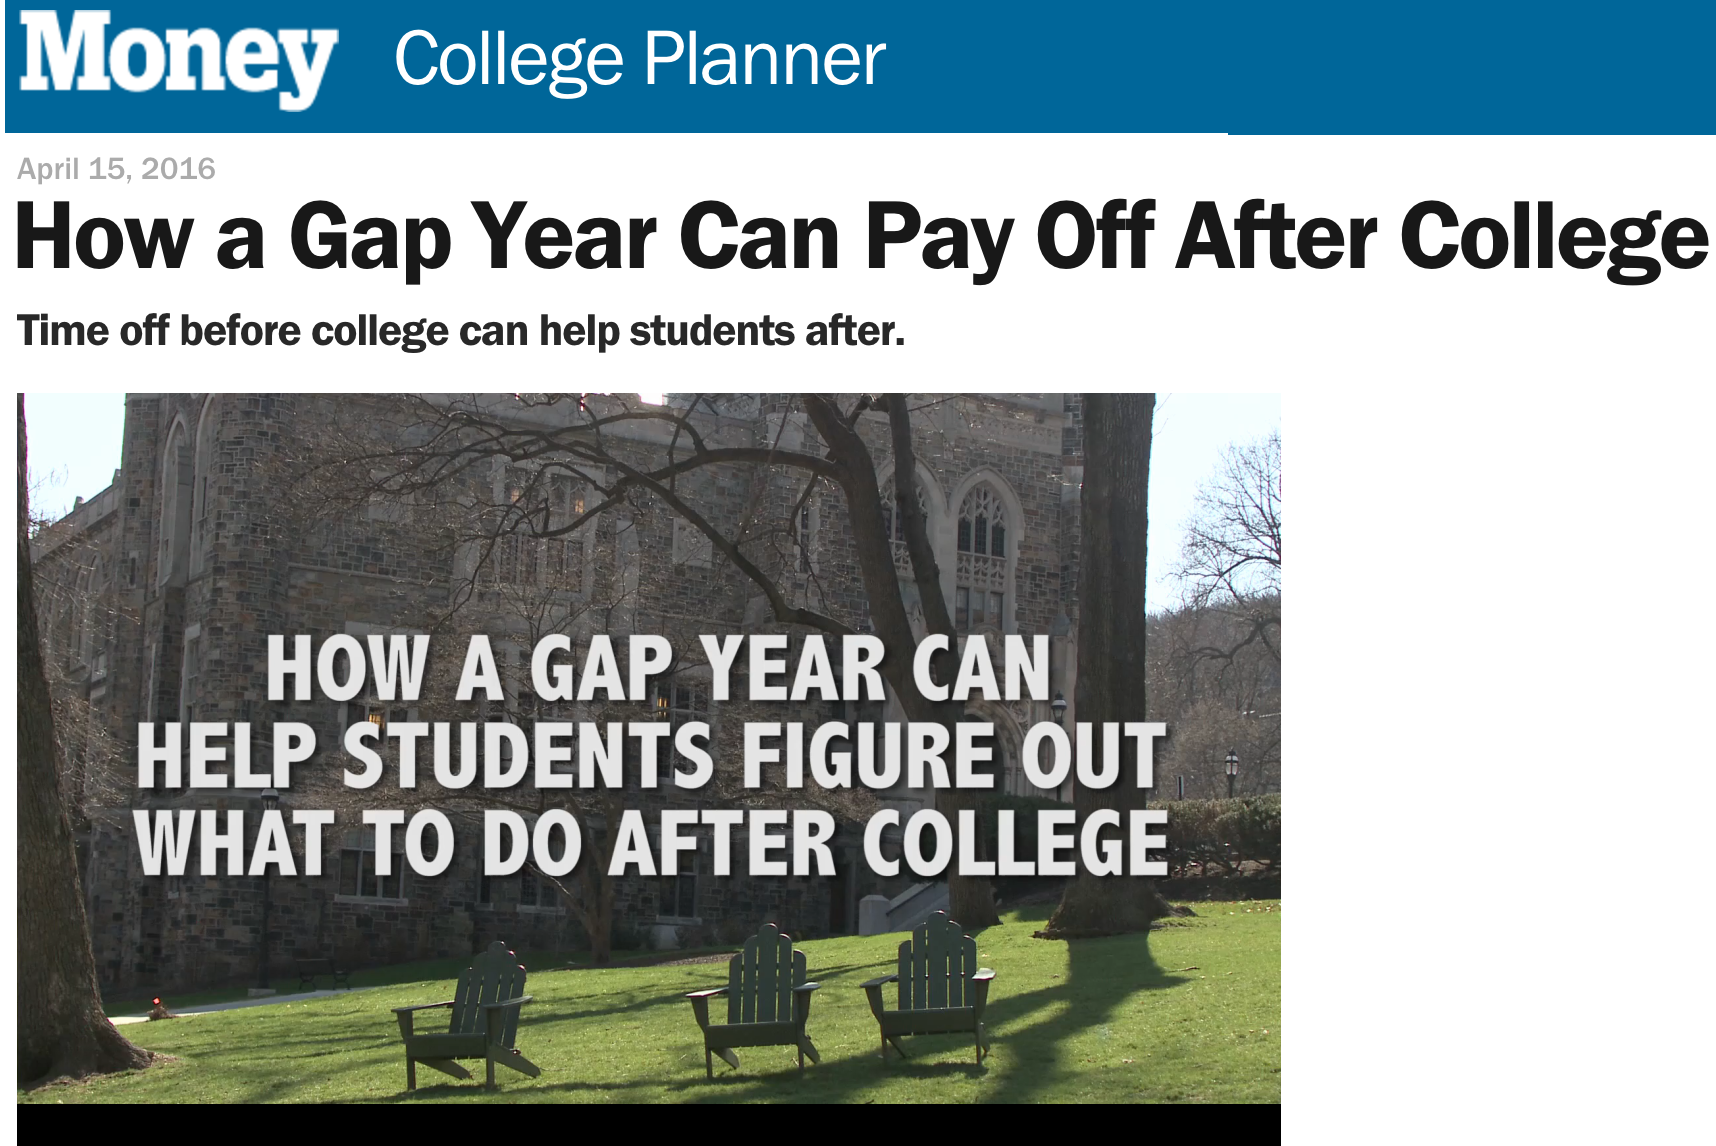 american gap association knight explains that gap years allow students to explore their interests and figure out where they want to land after they graduate